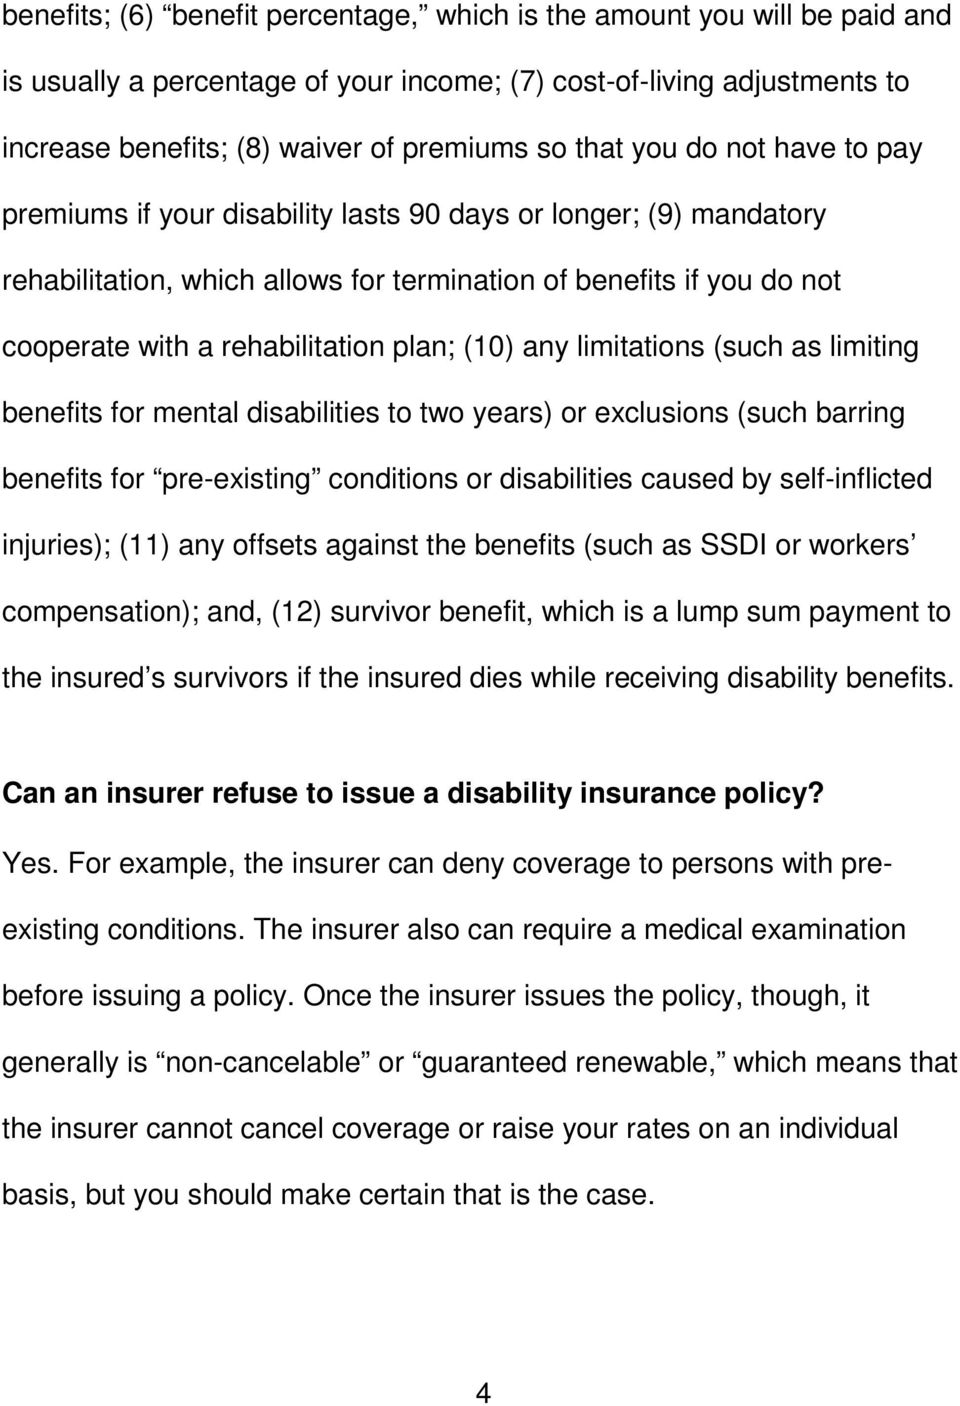 (10) any limitations (such as limiting benefits for mental disabilities to two years) or exclusions (such barring benefits for pre-existing conditions or disabilities caused by self-inflicted